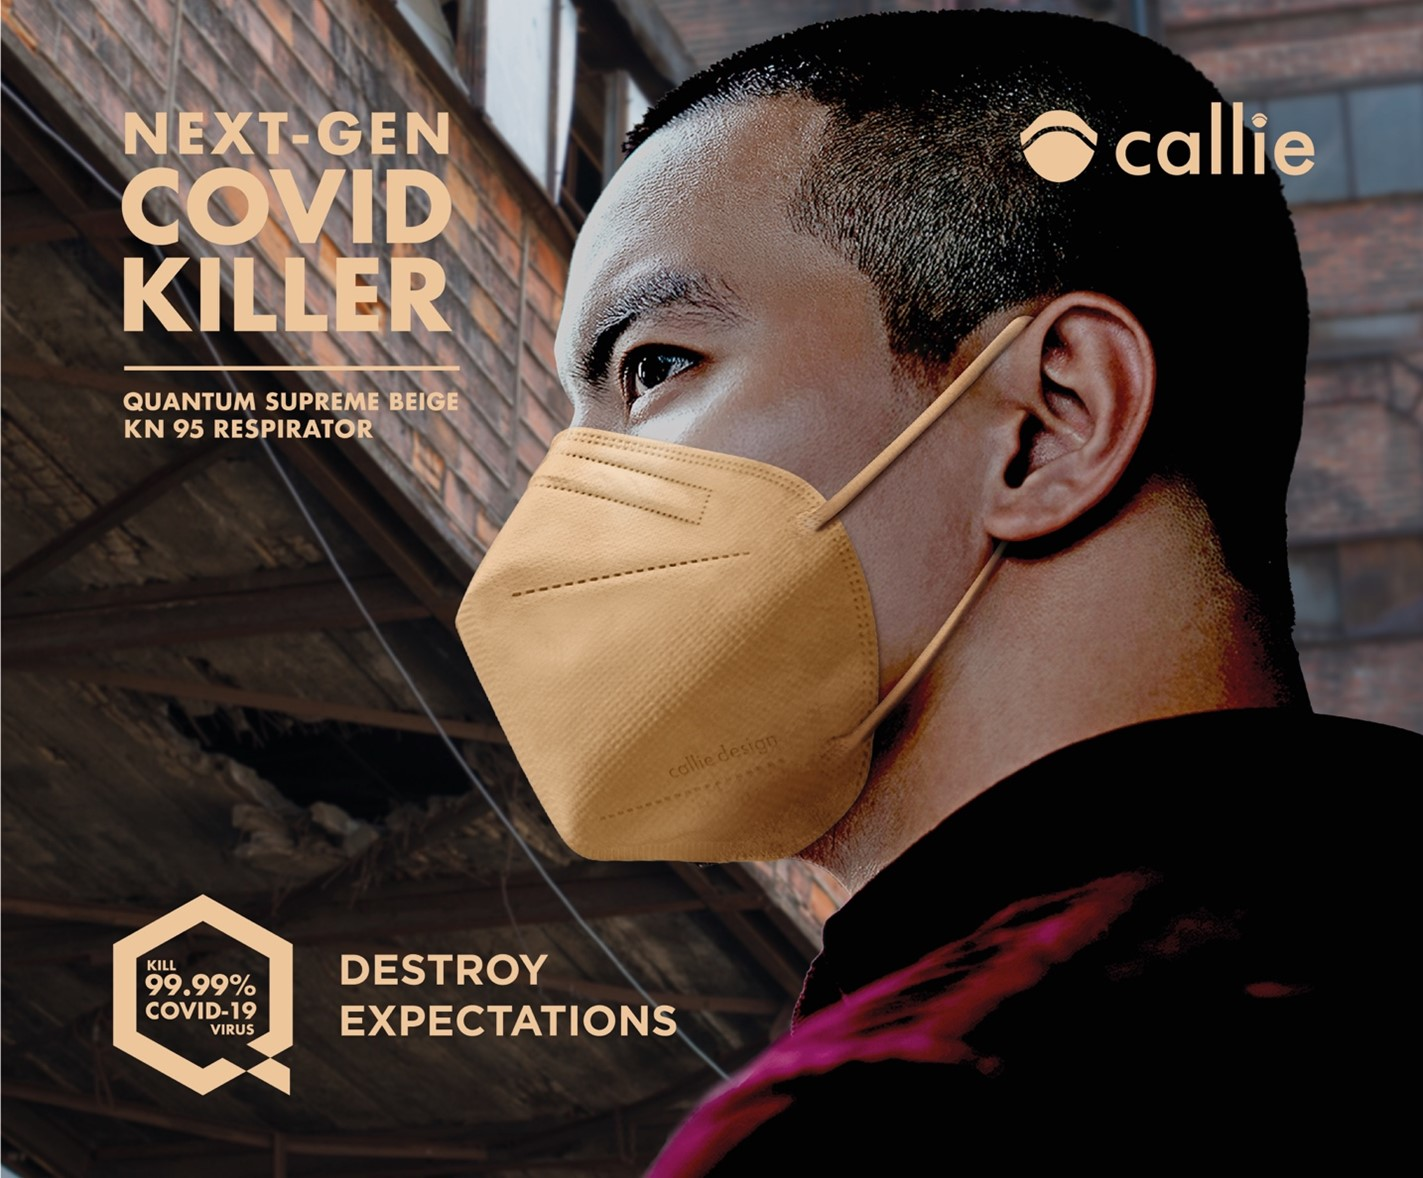 Resonating with Malaysian Lifestyles: Callie Launches Breakthrough Virus-Killing Mask